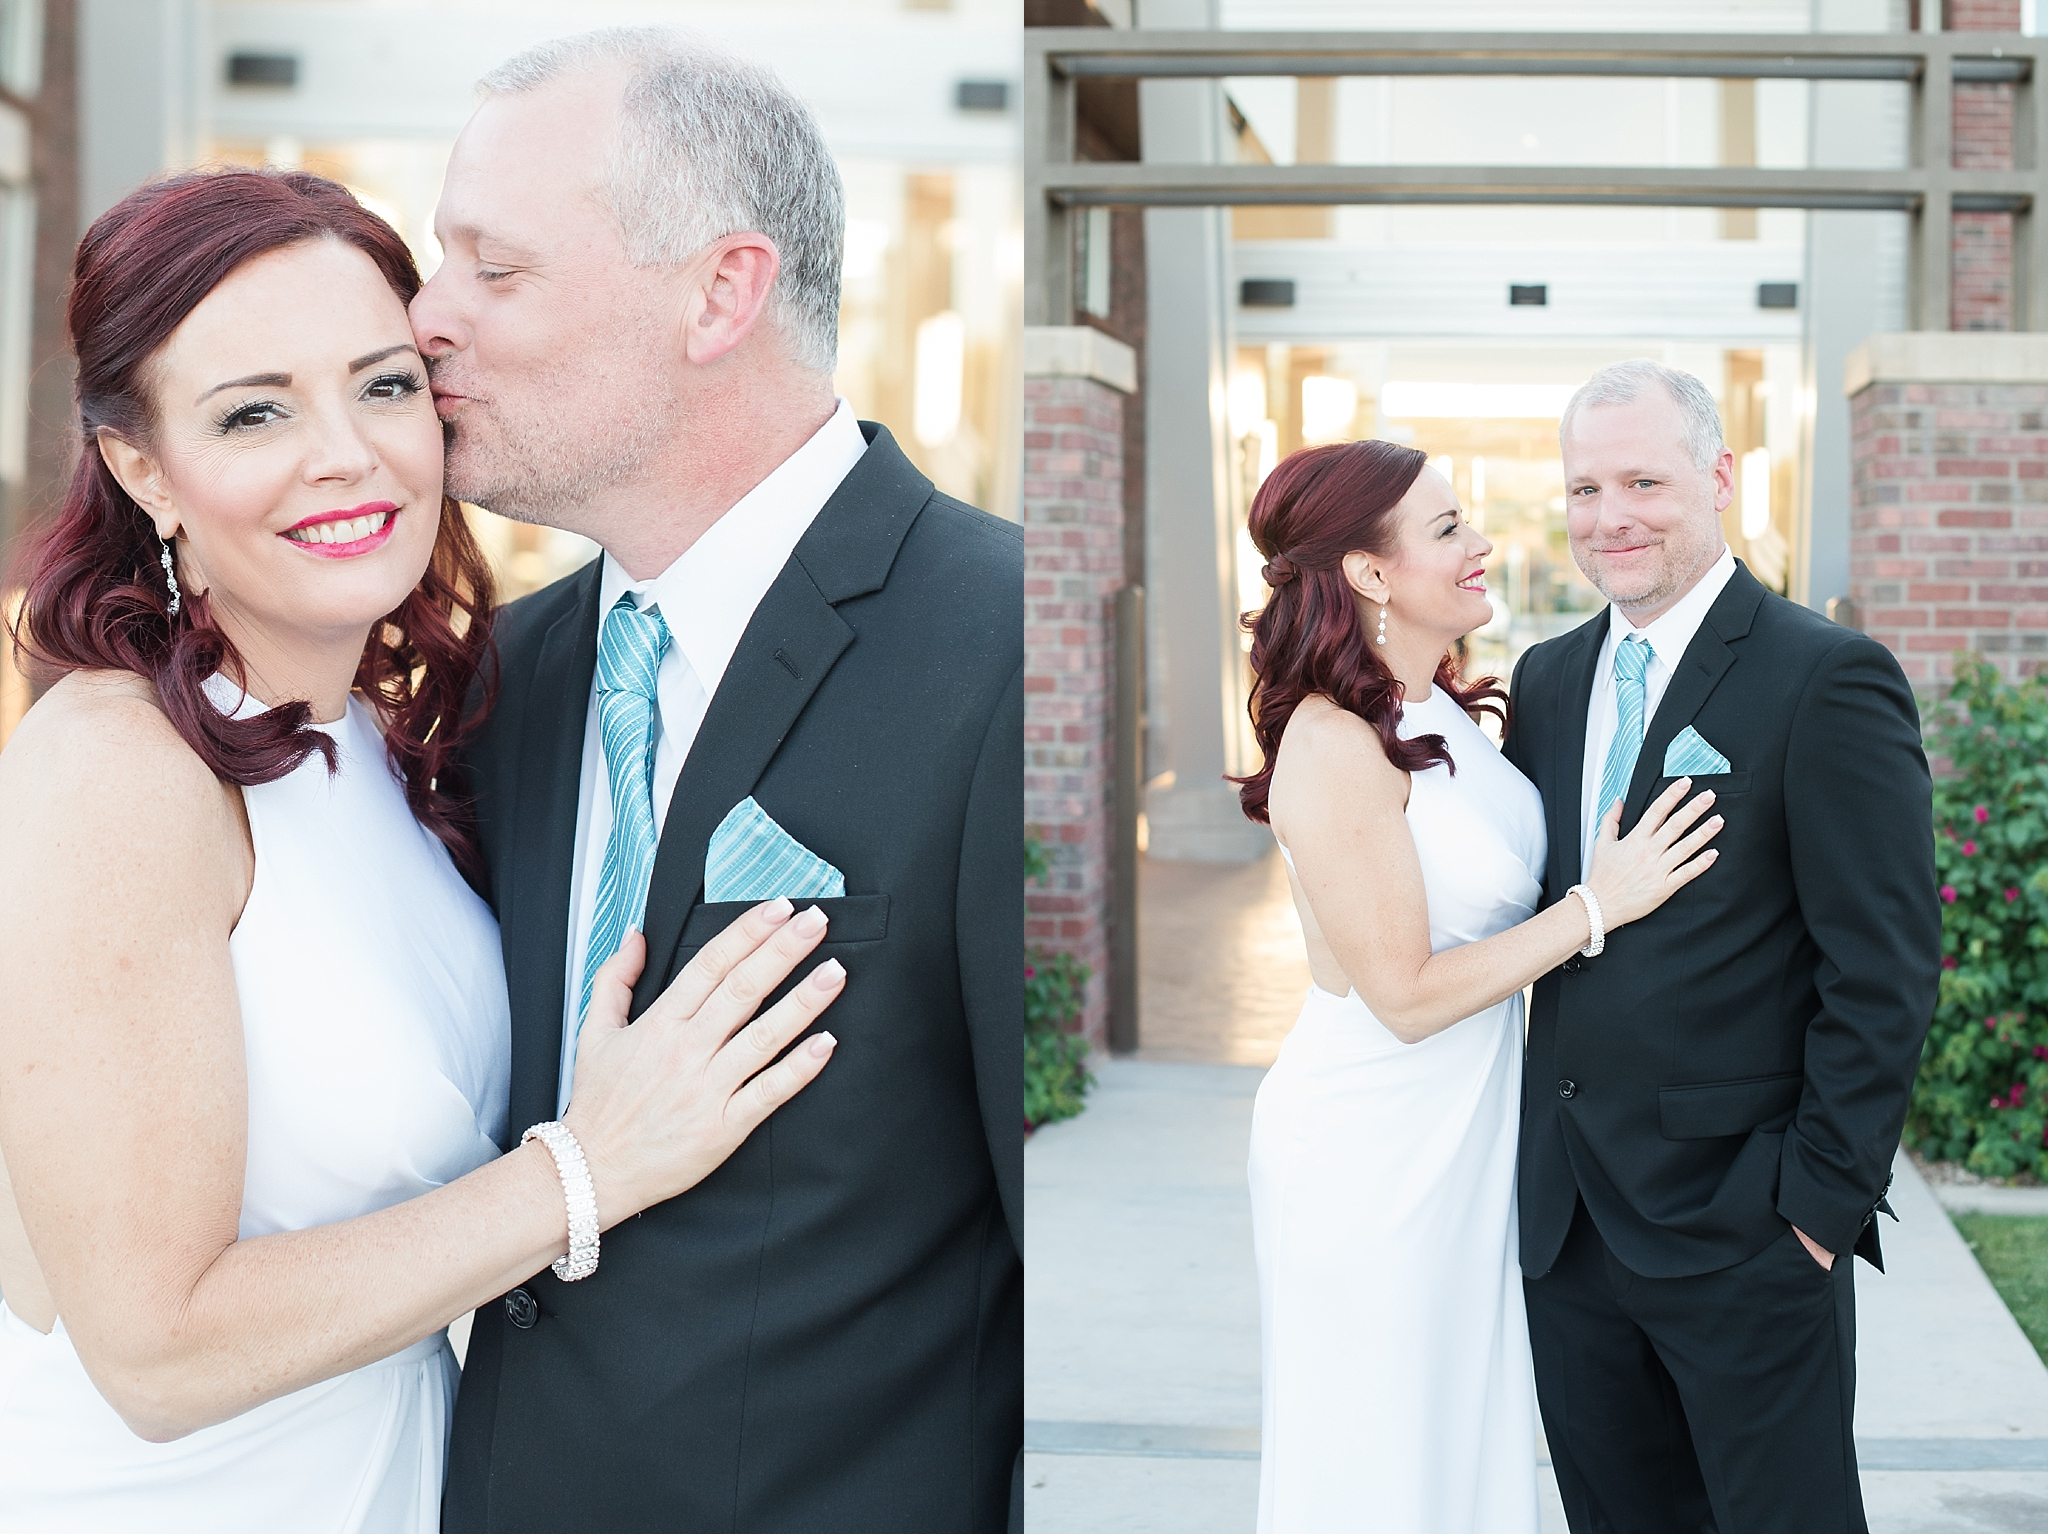 Congratulations to the bride and groom, Jackie and Chris Lawrence! Their beautiful wedding was held at The Falls Event Center in Gilbert. Wedding photos by by Jade Min Photography.